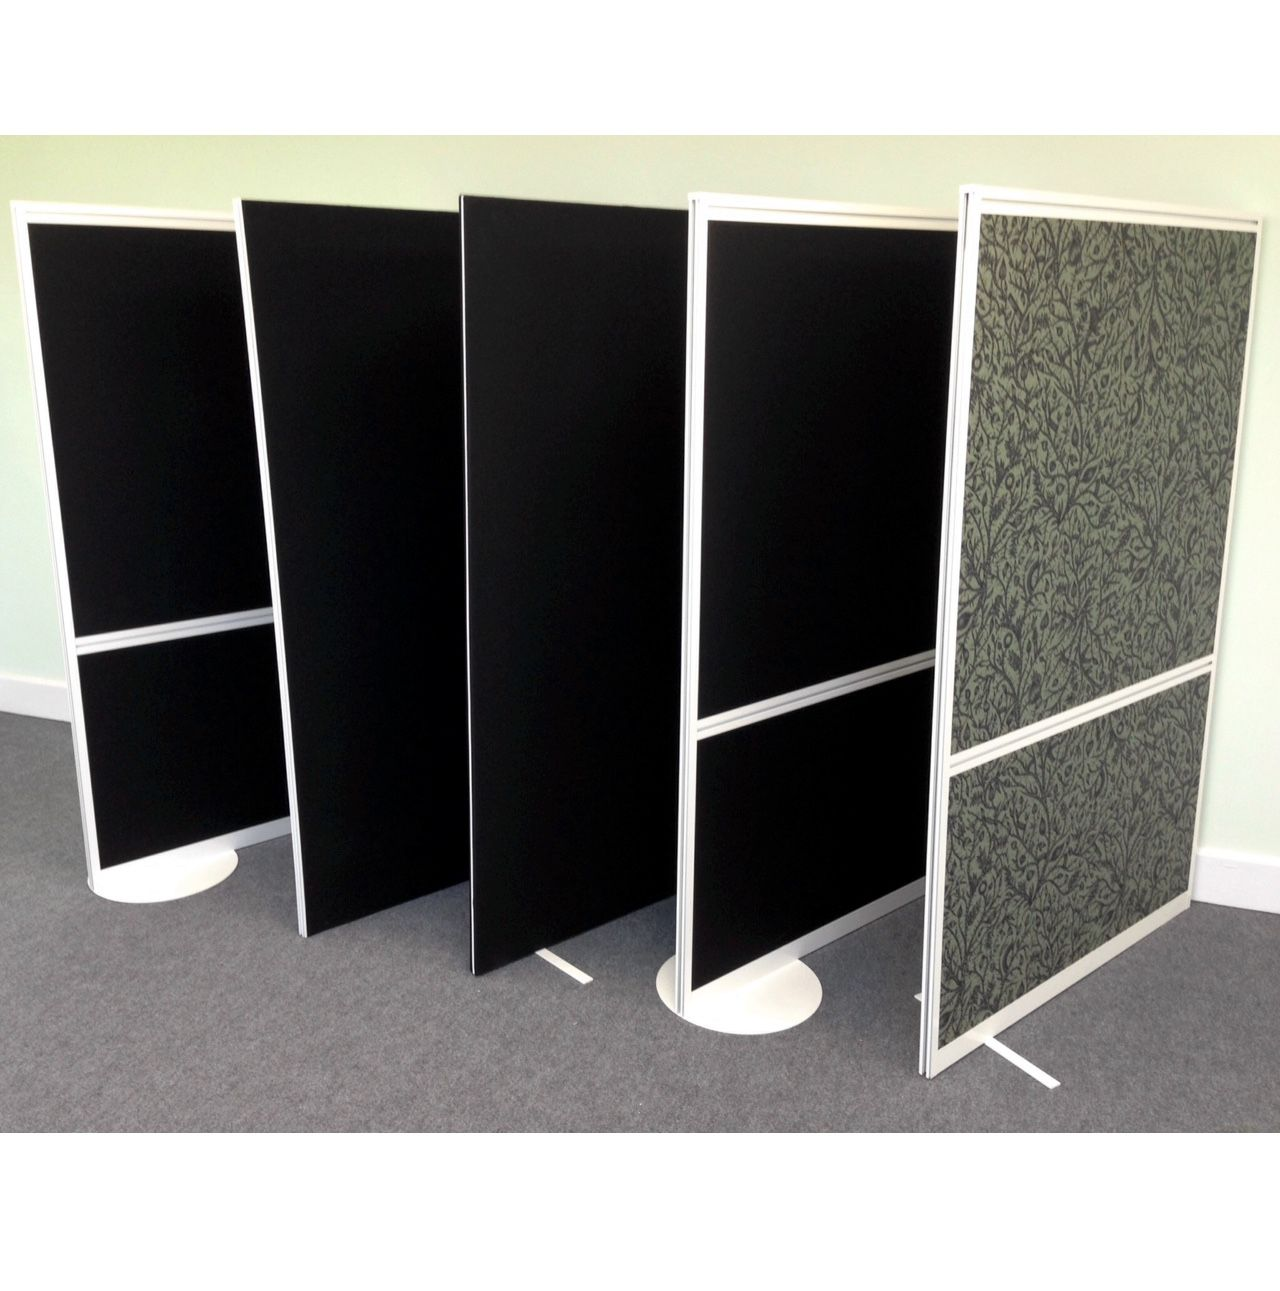 New free standing screens tall office dividers for Free standing